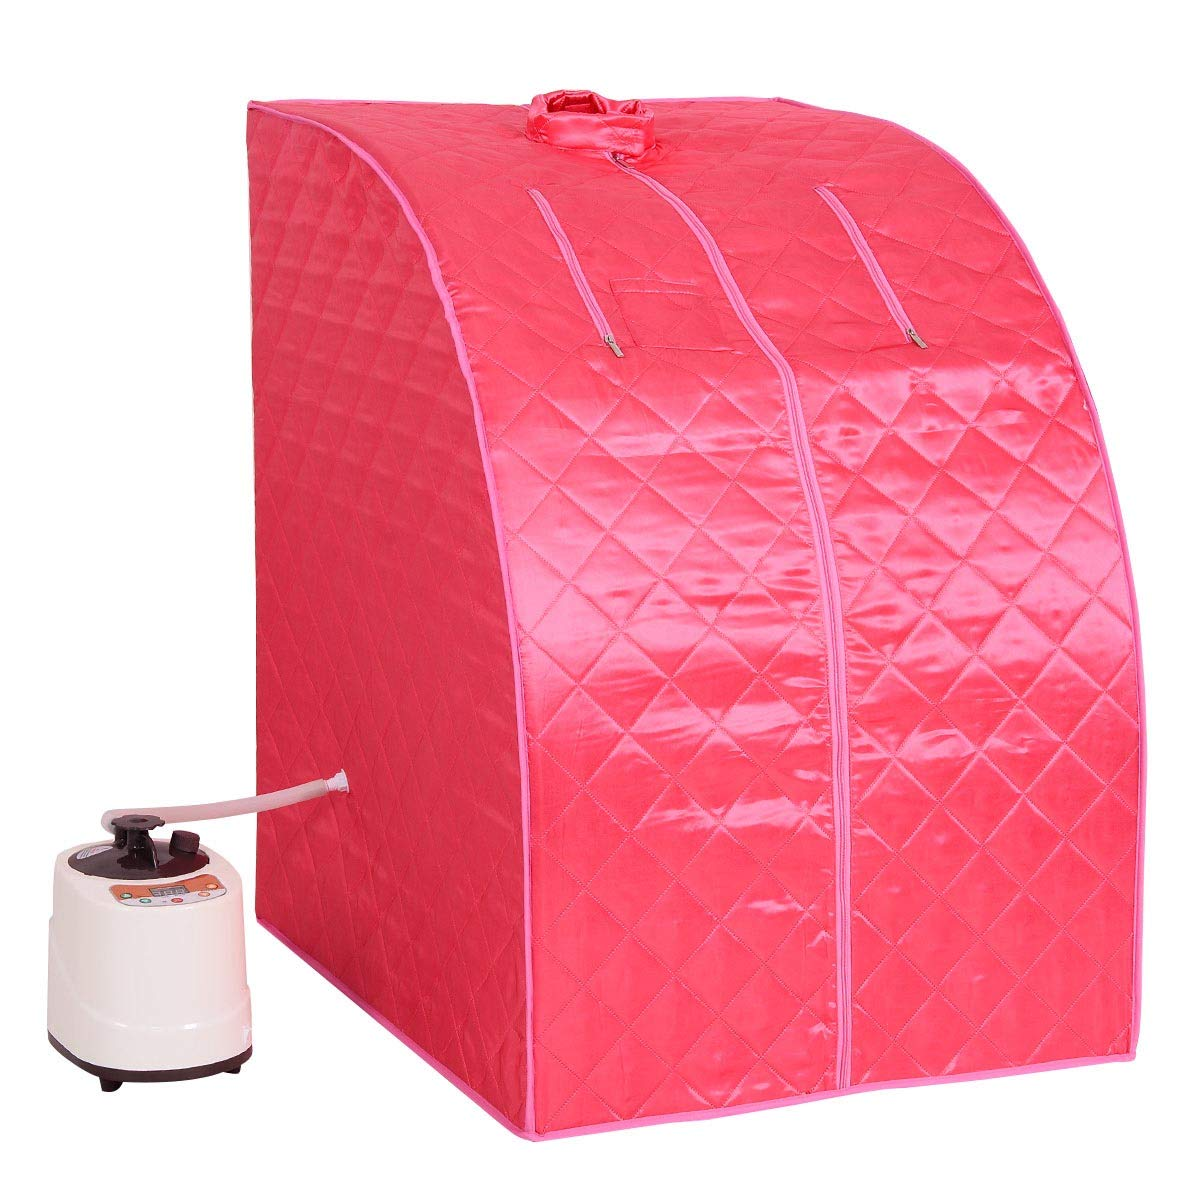 Giantex Portable Sauna